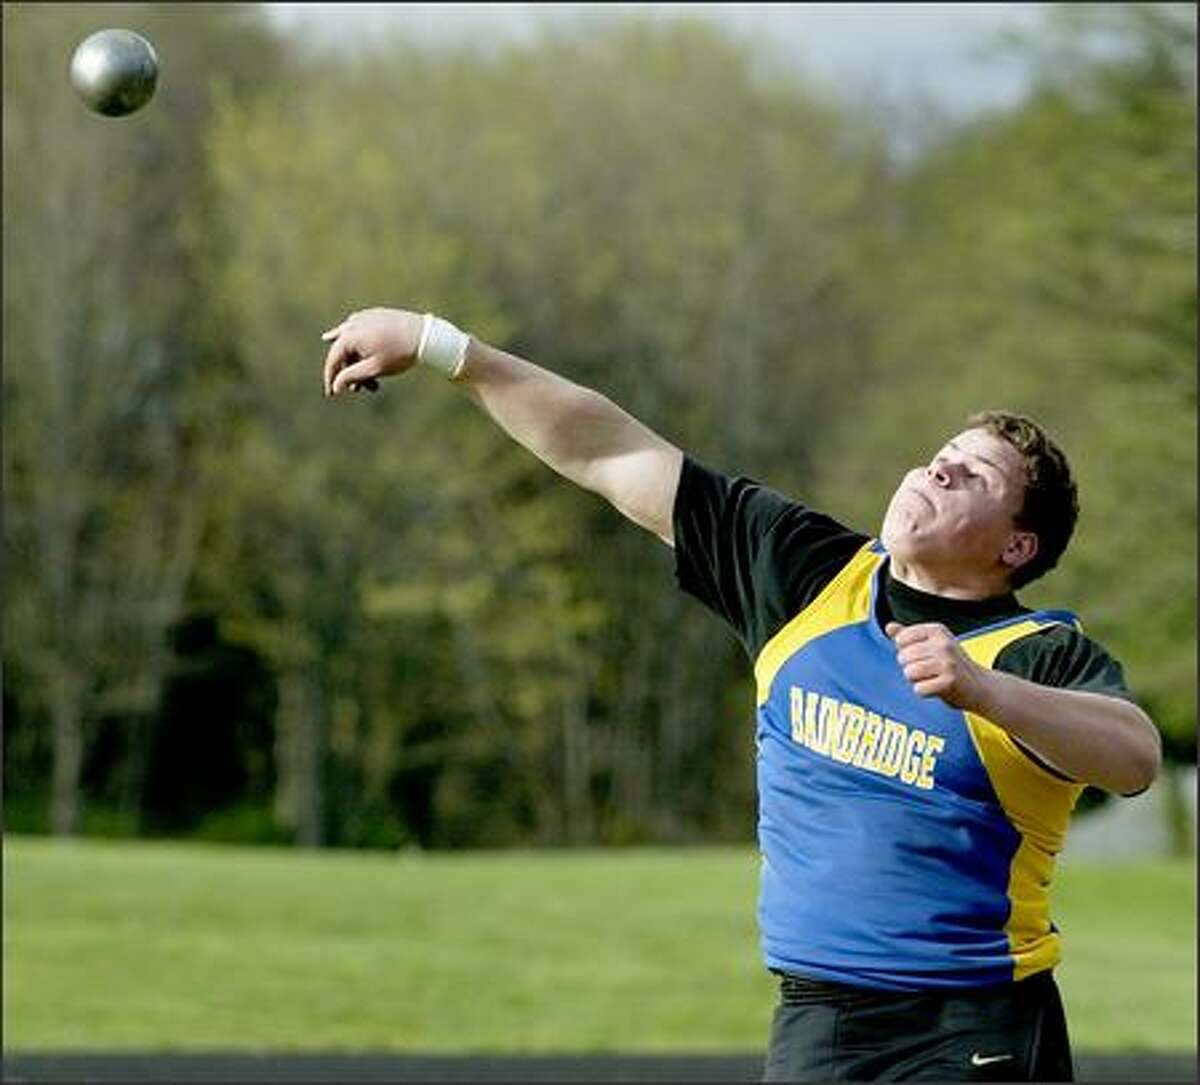 Bainbridge senior Matt Wauters recently exceeded 64 feet in the shot put, leaving him more than 5 feet short of Vince Goldsmith's state record.